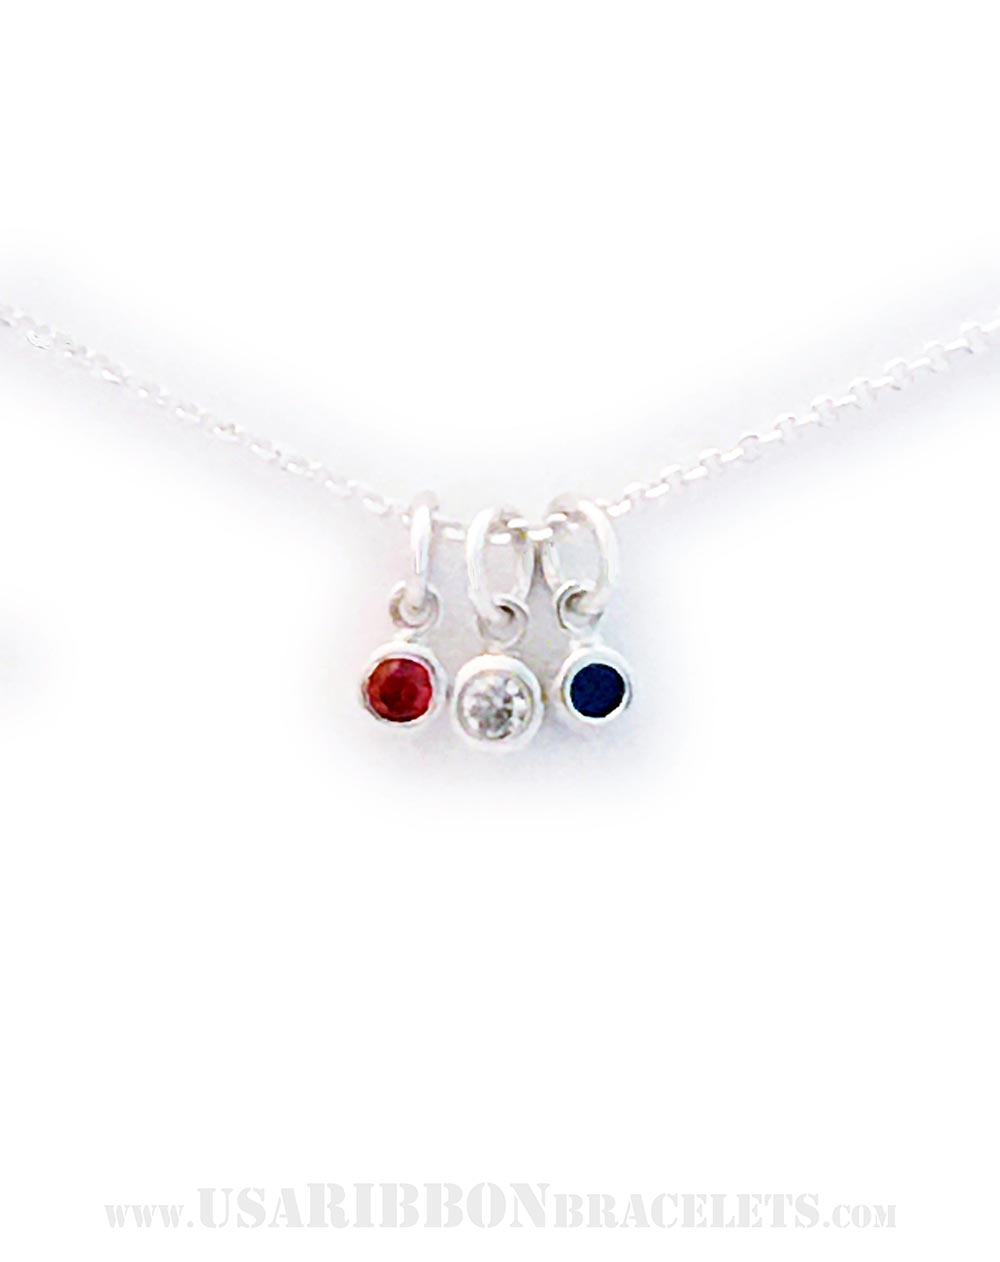 This Red White and Blue Charm Necklace is shown on a sterling silver Rolo Chain necklace.